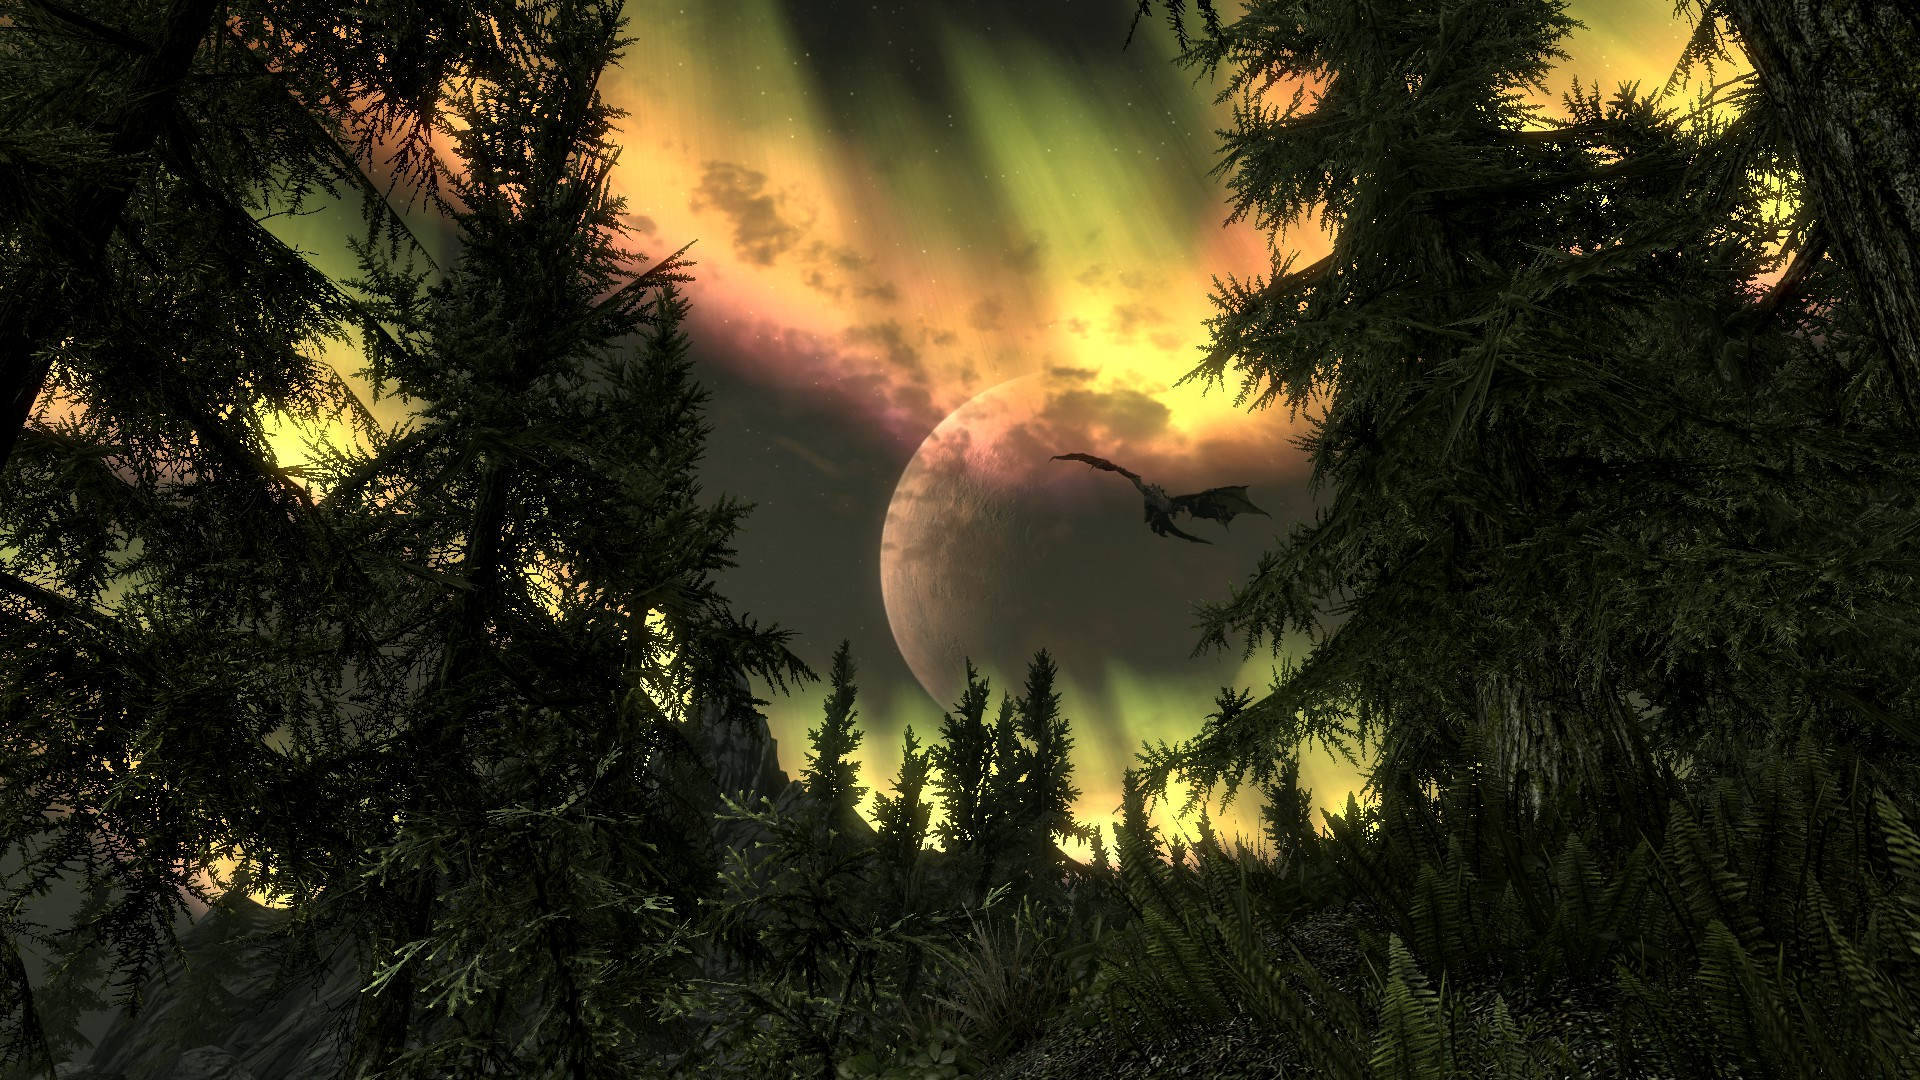 Skyrim dragon wallpaper by deathdr3am on deviantart skyrim dragon wallpaper by deathdr3am skyrim dragon wallpaper by deathdr3am voltagebd Choice Image